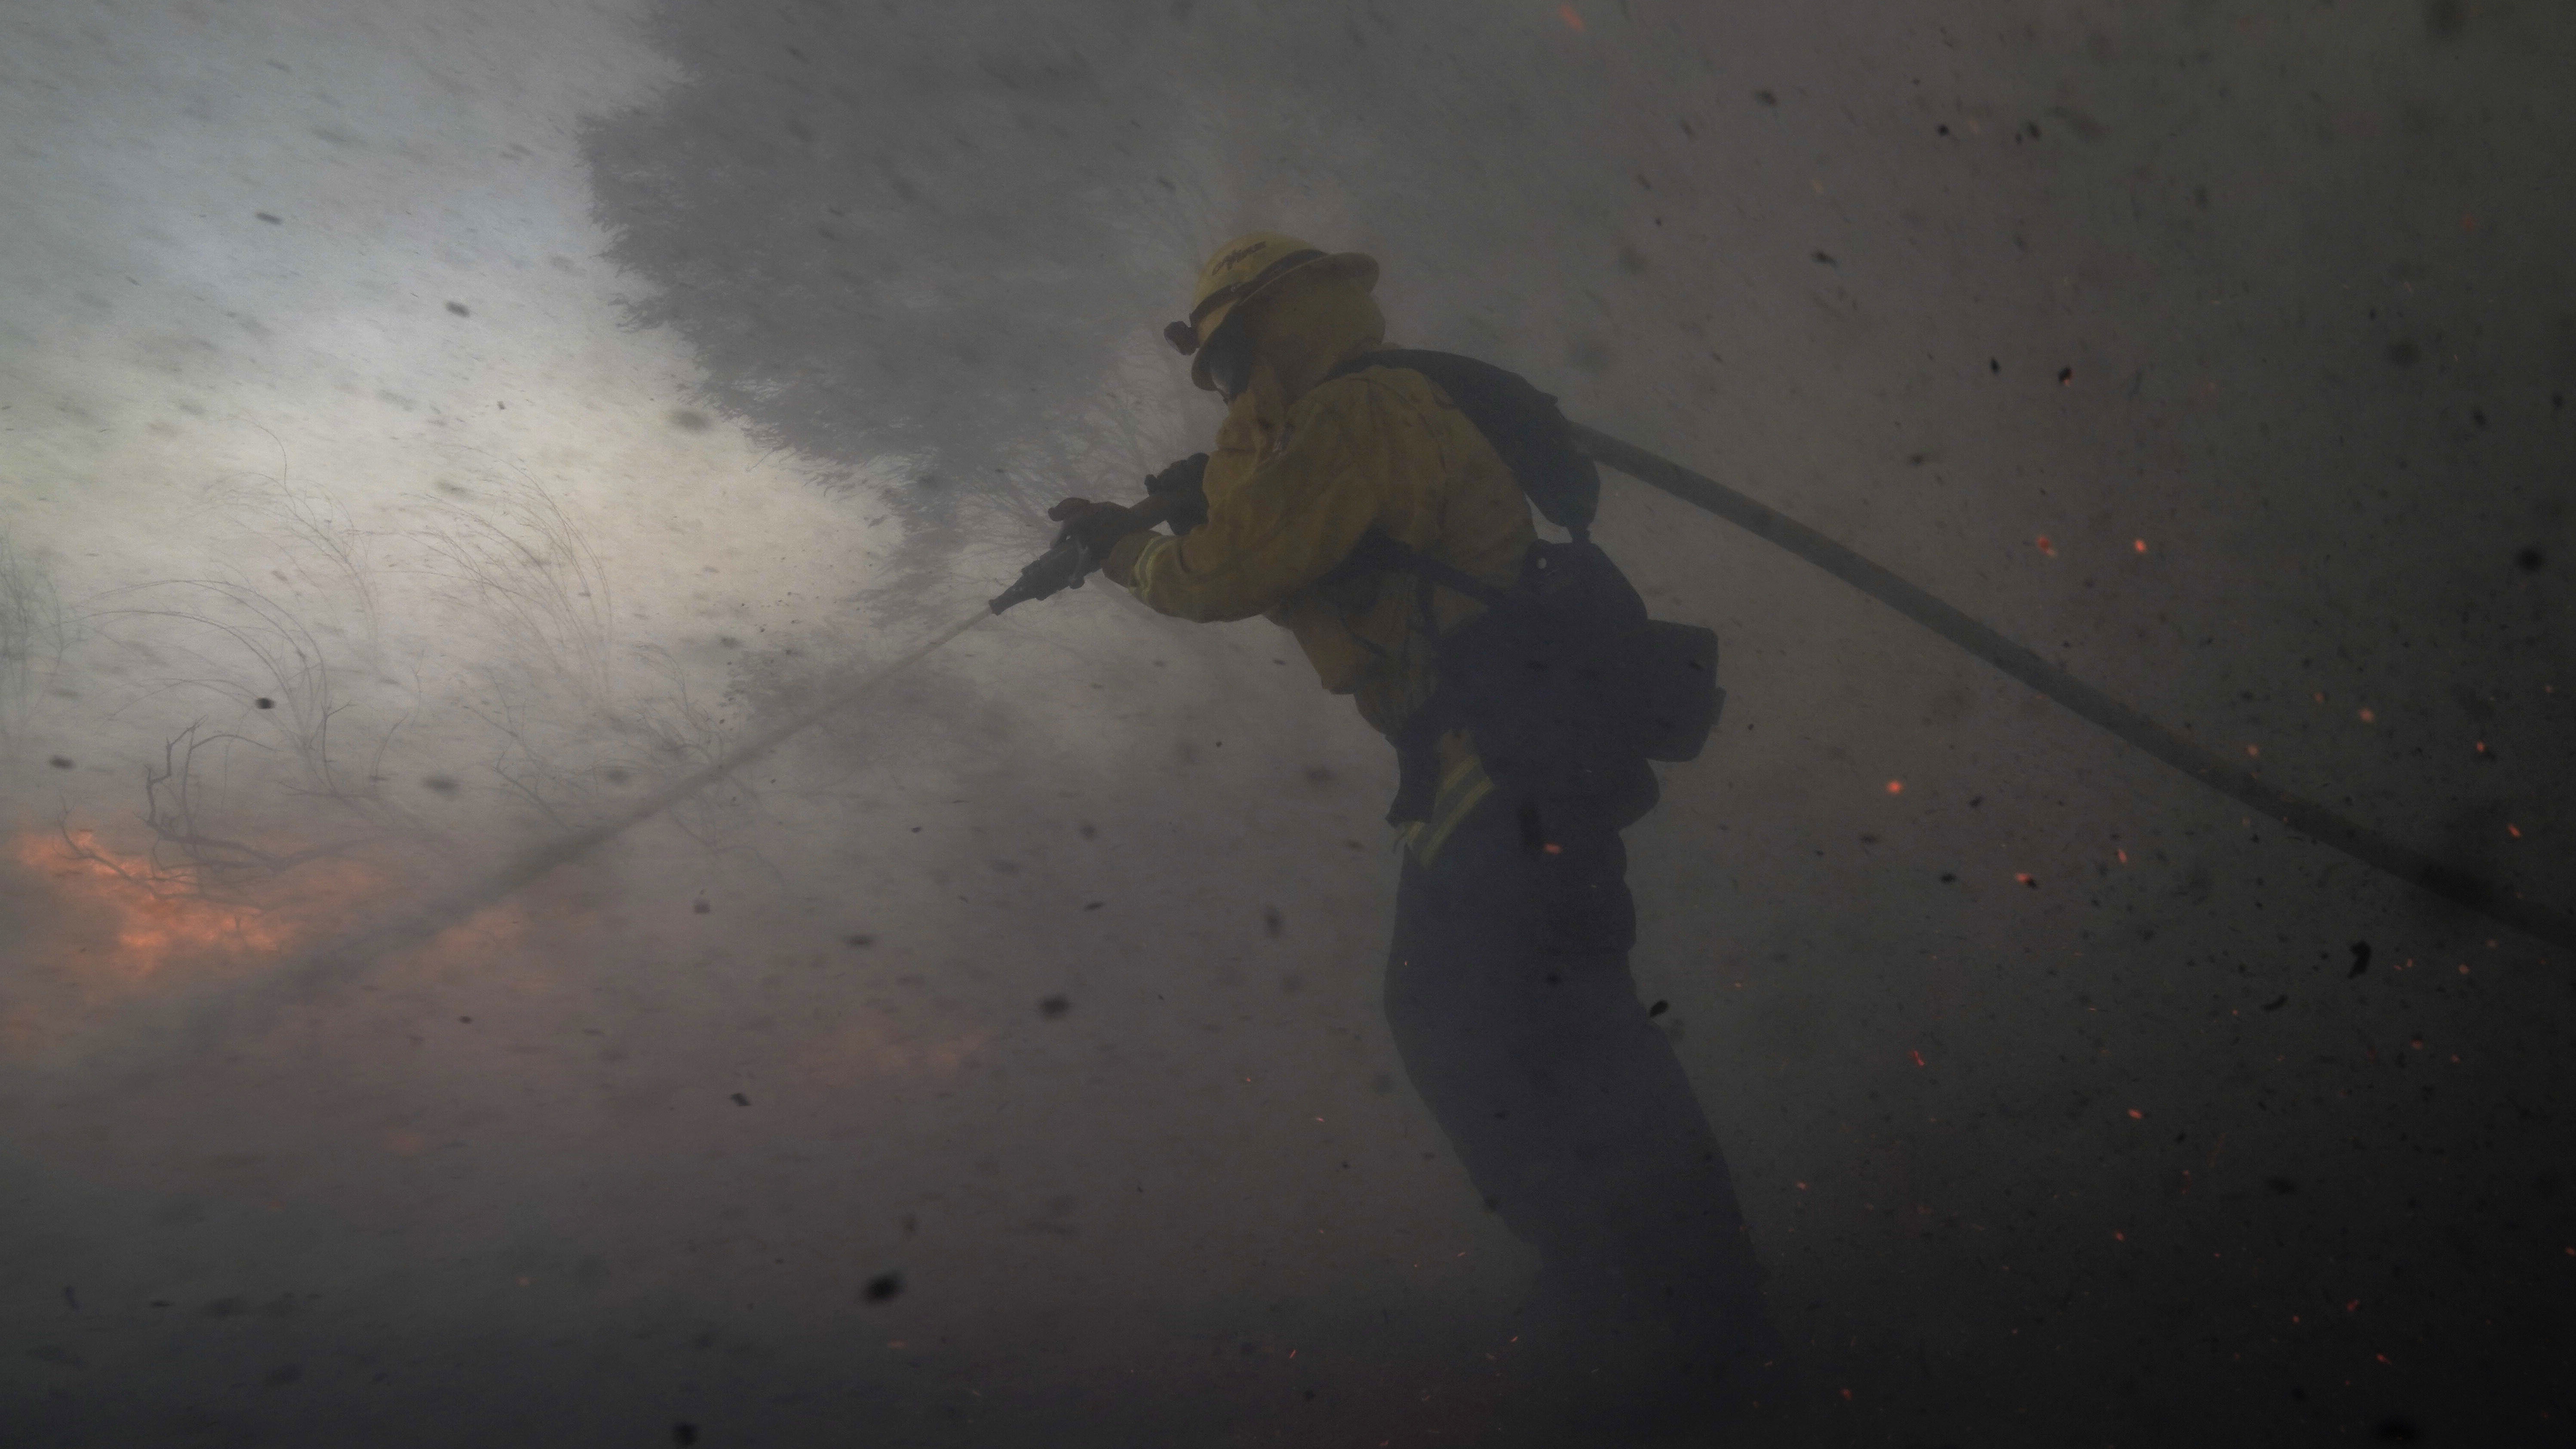 A firefighter battles the Silverado Fire Monday,in Irvine, Calif. The wildfire forced evacuation orders for 60,000 people in Southern California.